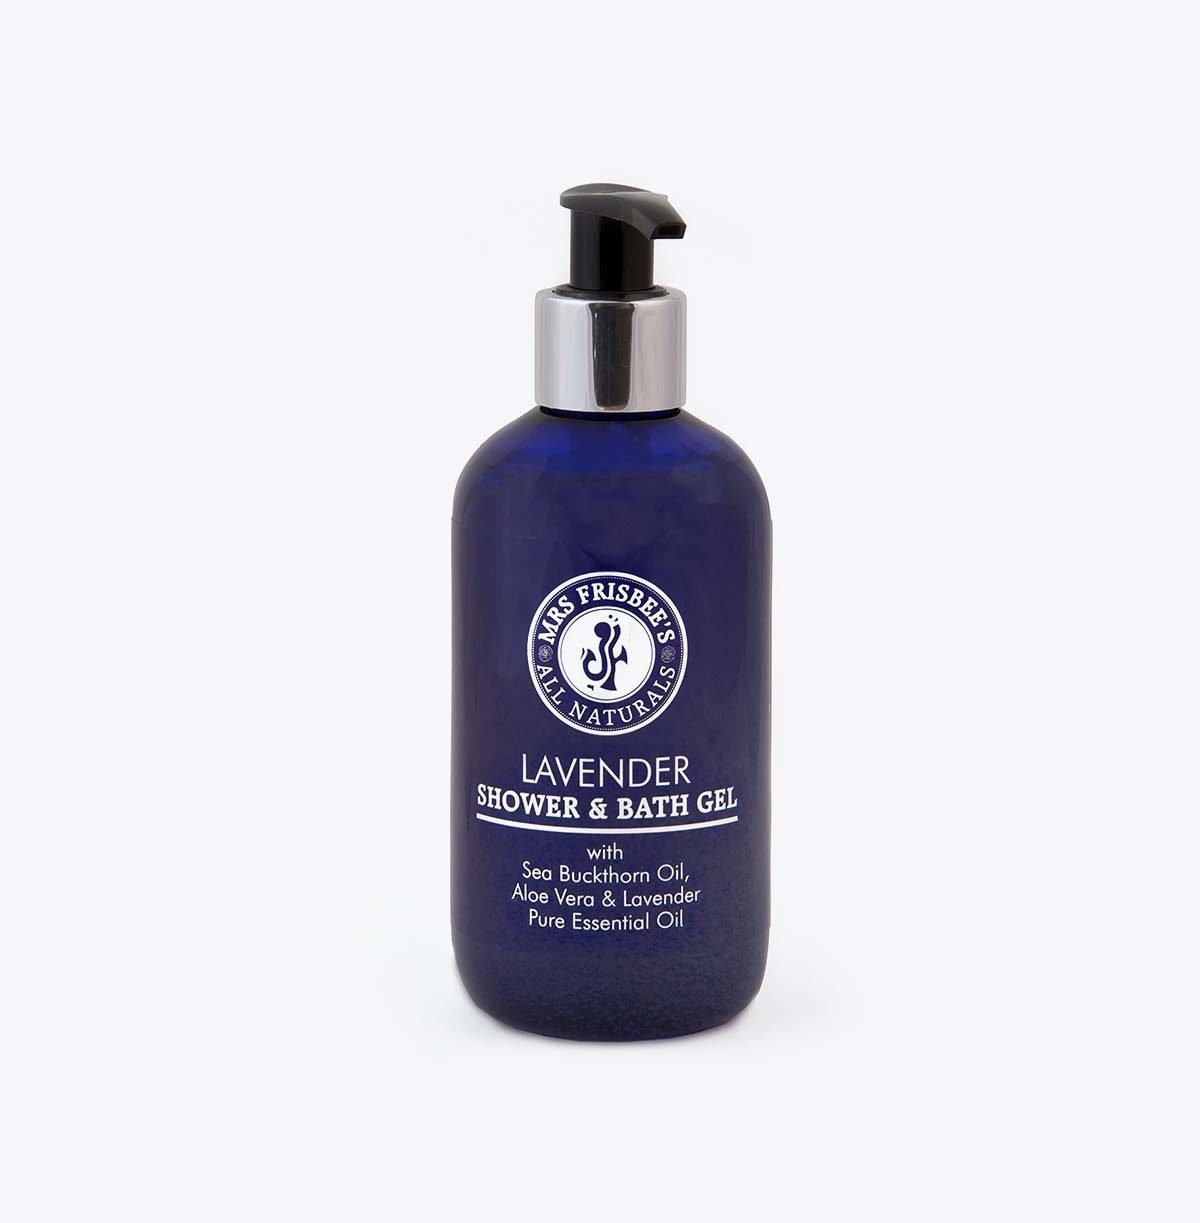 Lavender Shower Gel 250ml, with sea buckthorn oil, aloe vera and lavender pure essential oil.